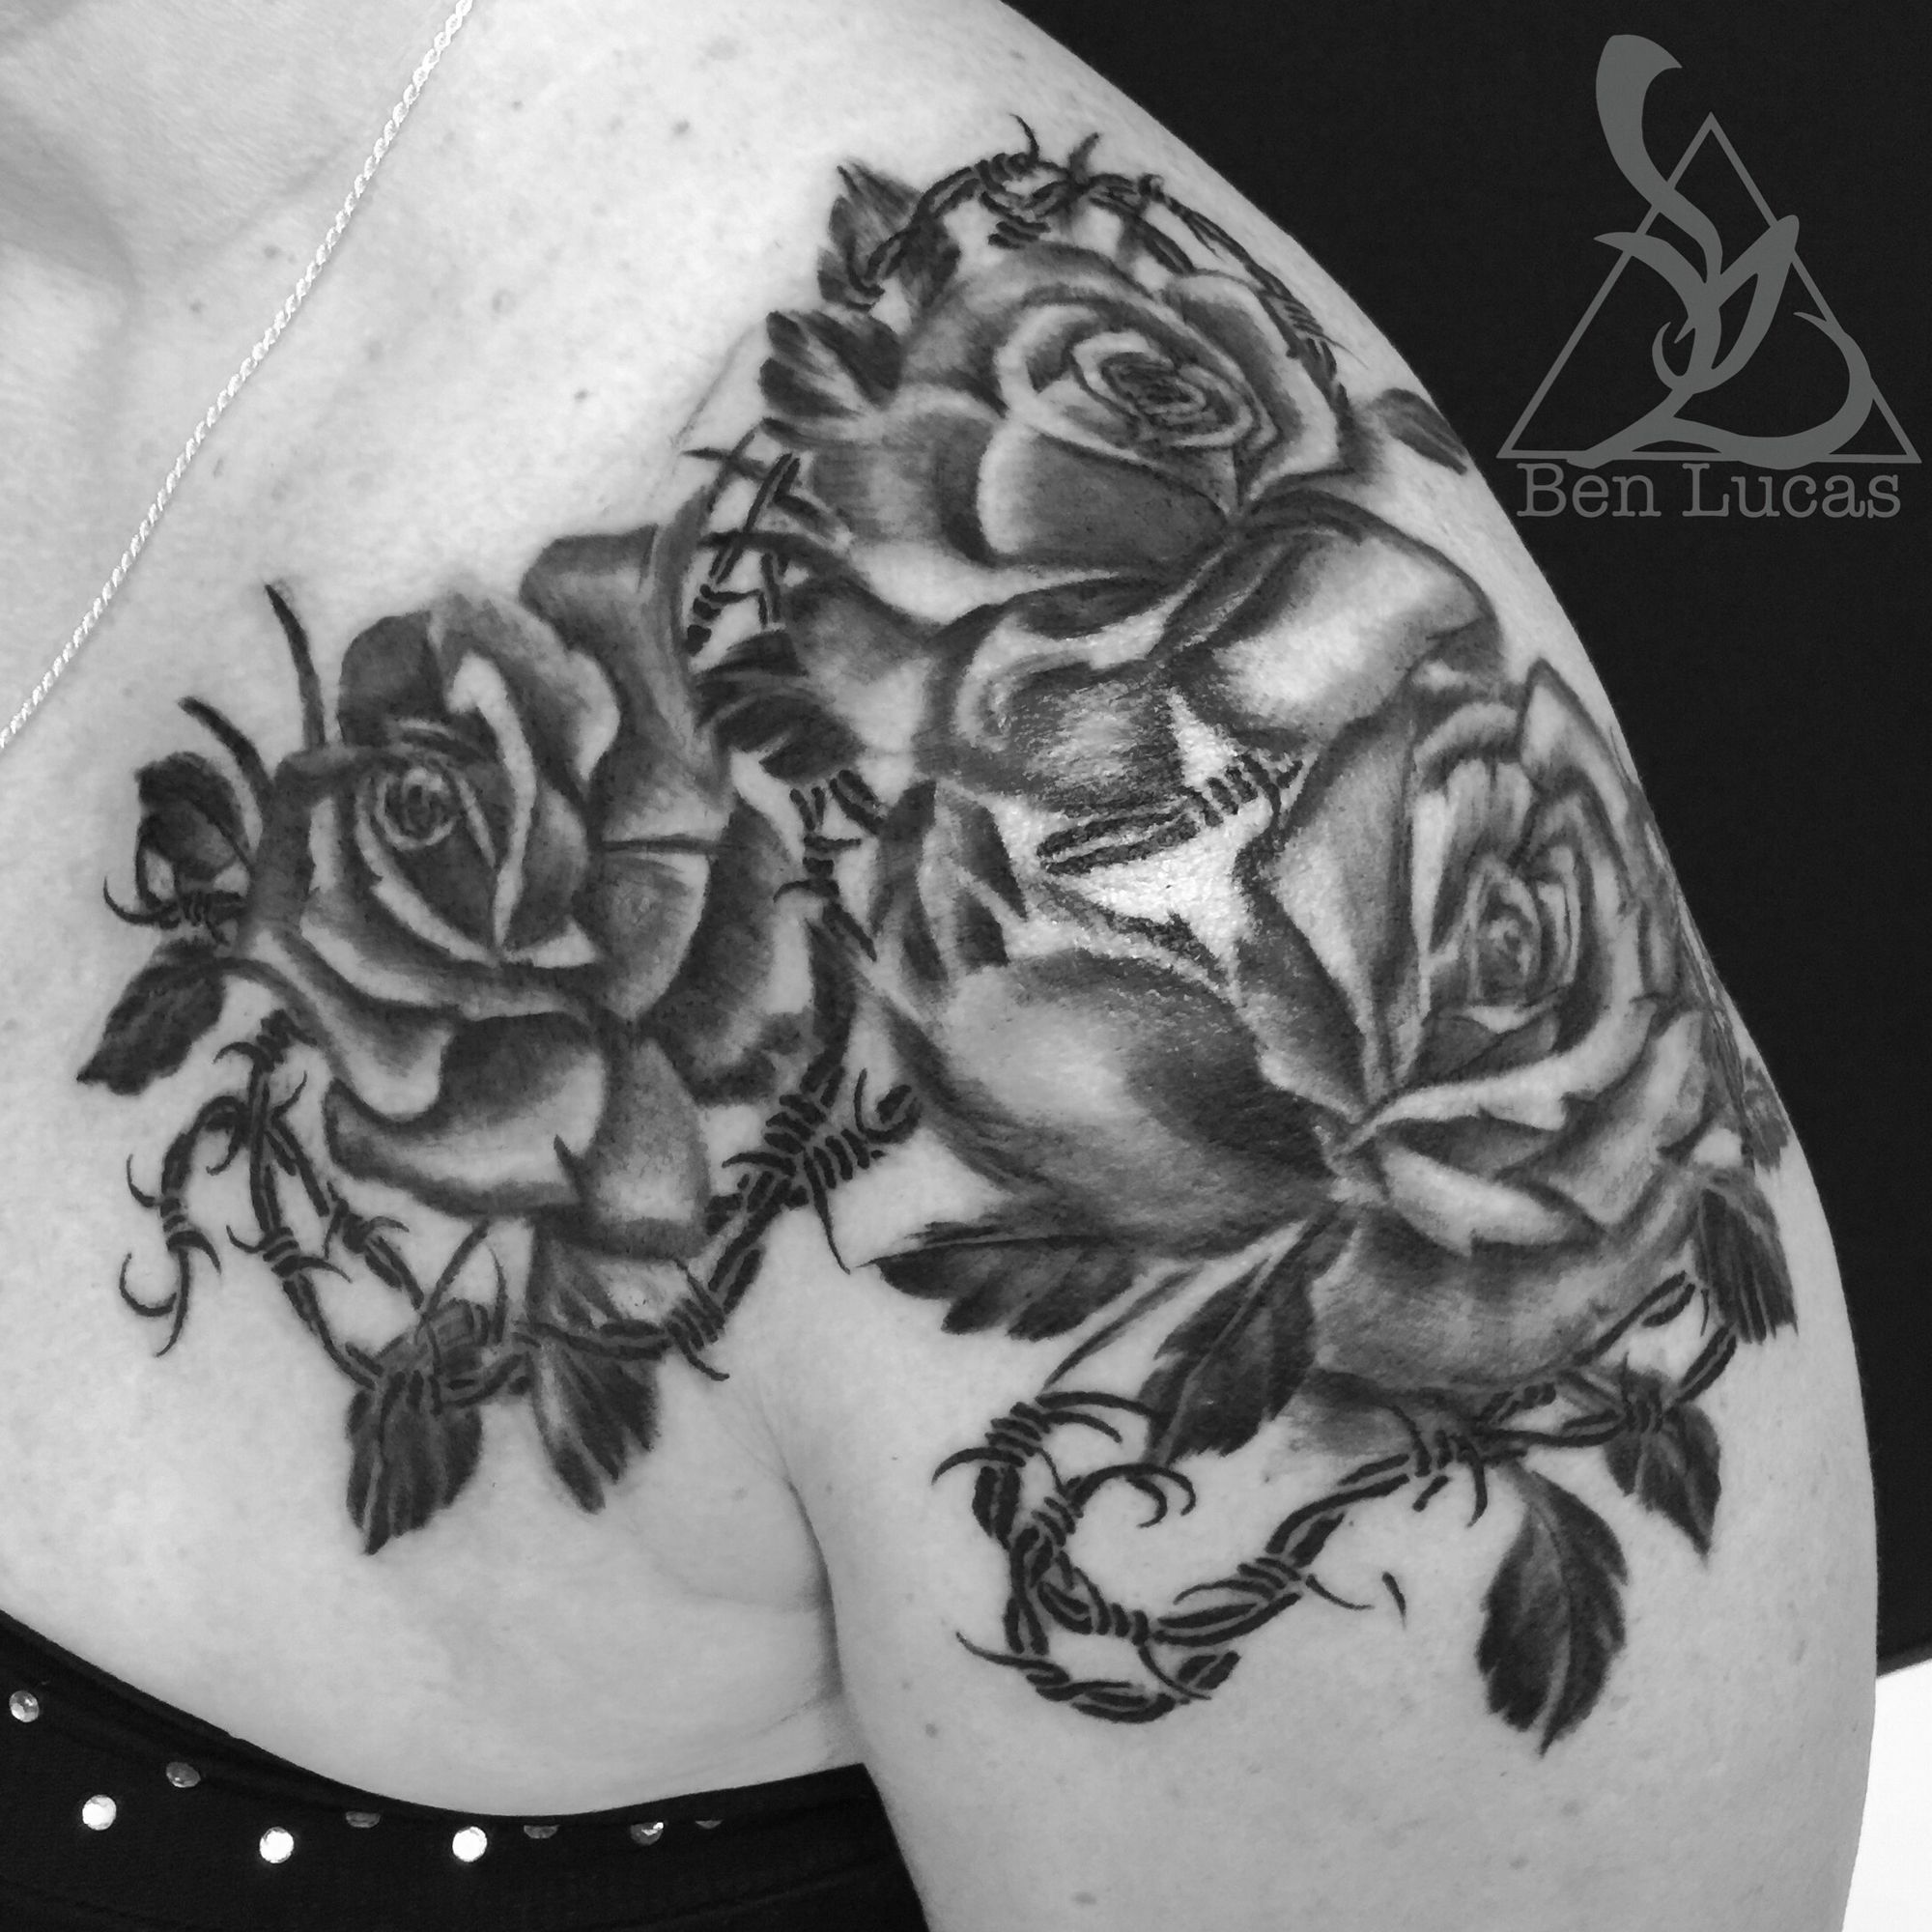 Rose tattoo. Black rose tattoo with barbed wire | Tat Tat Tatttddd ...